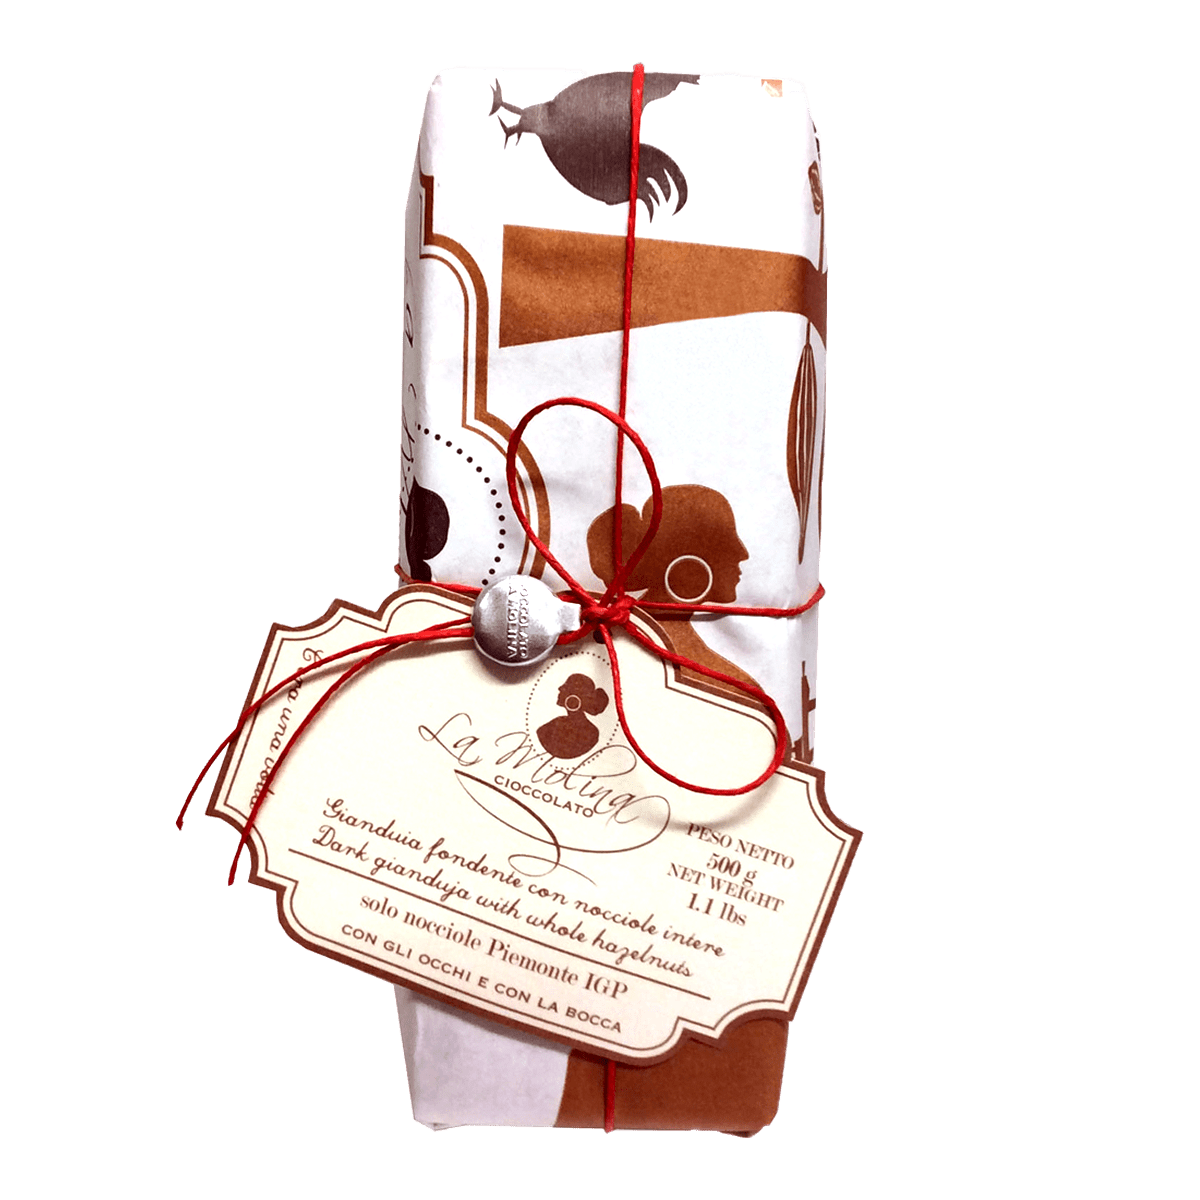 ONCE UPON A TIME dark gianduja with whole hazelnuts 500 g